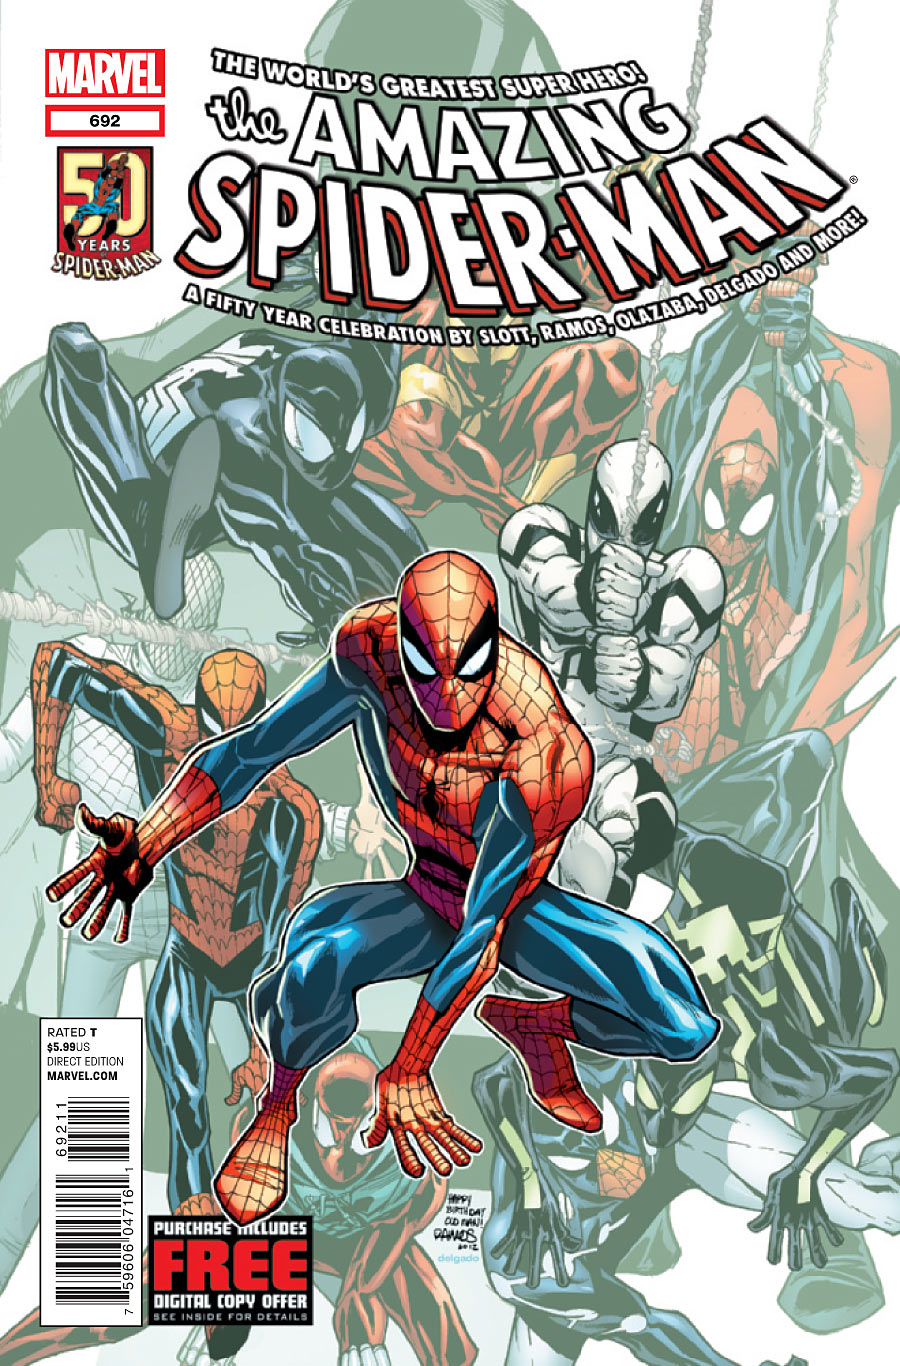 Amazing Spider-Man Vol 1 692